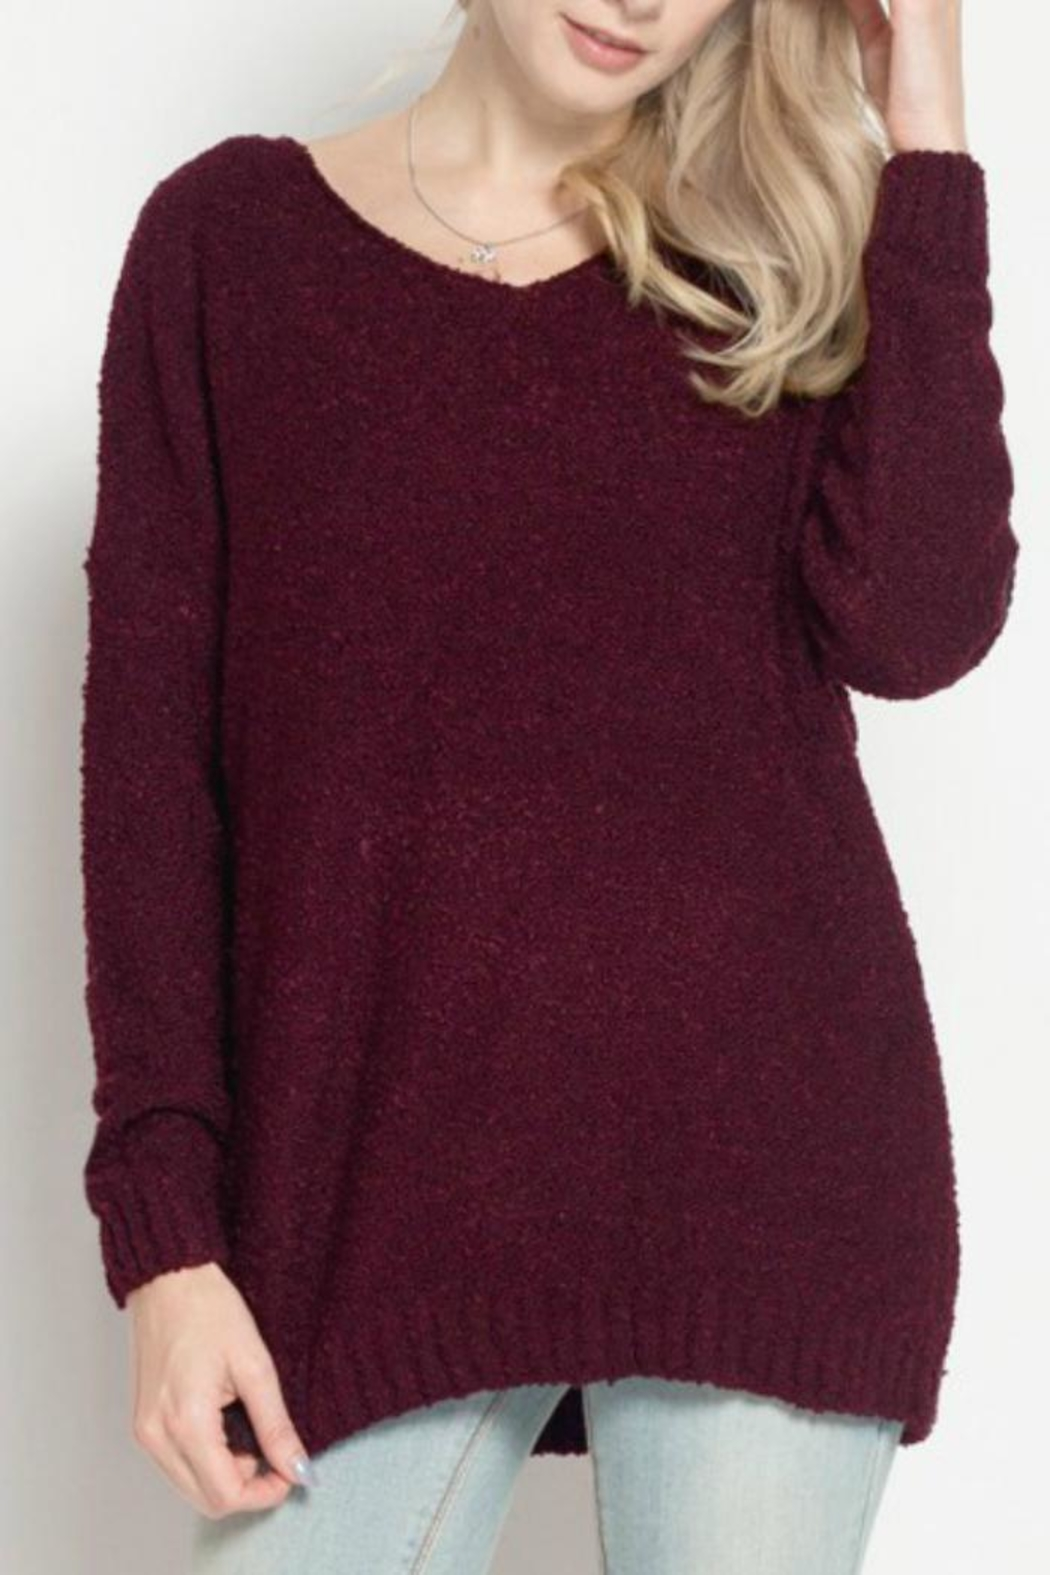 Dreamers Burgundy Marled Sweater - Main Image